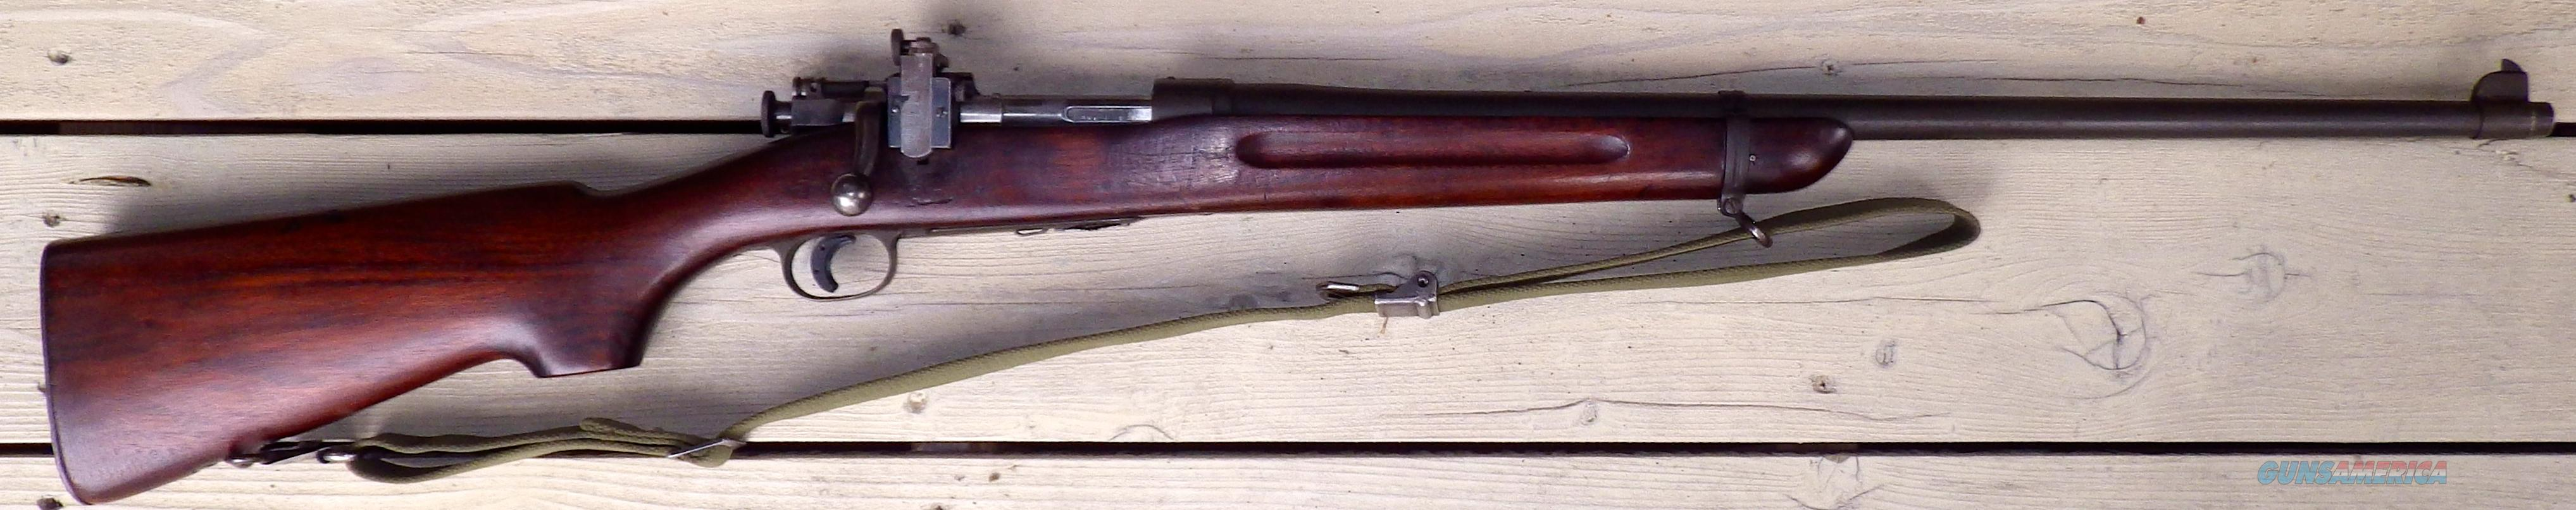 Springfield M2 .22 LR training rifle  Guns > Rifles > Military Misc. Rifles US > 1903 Springfield/Variants